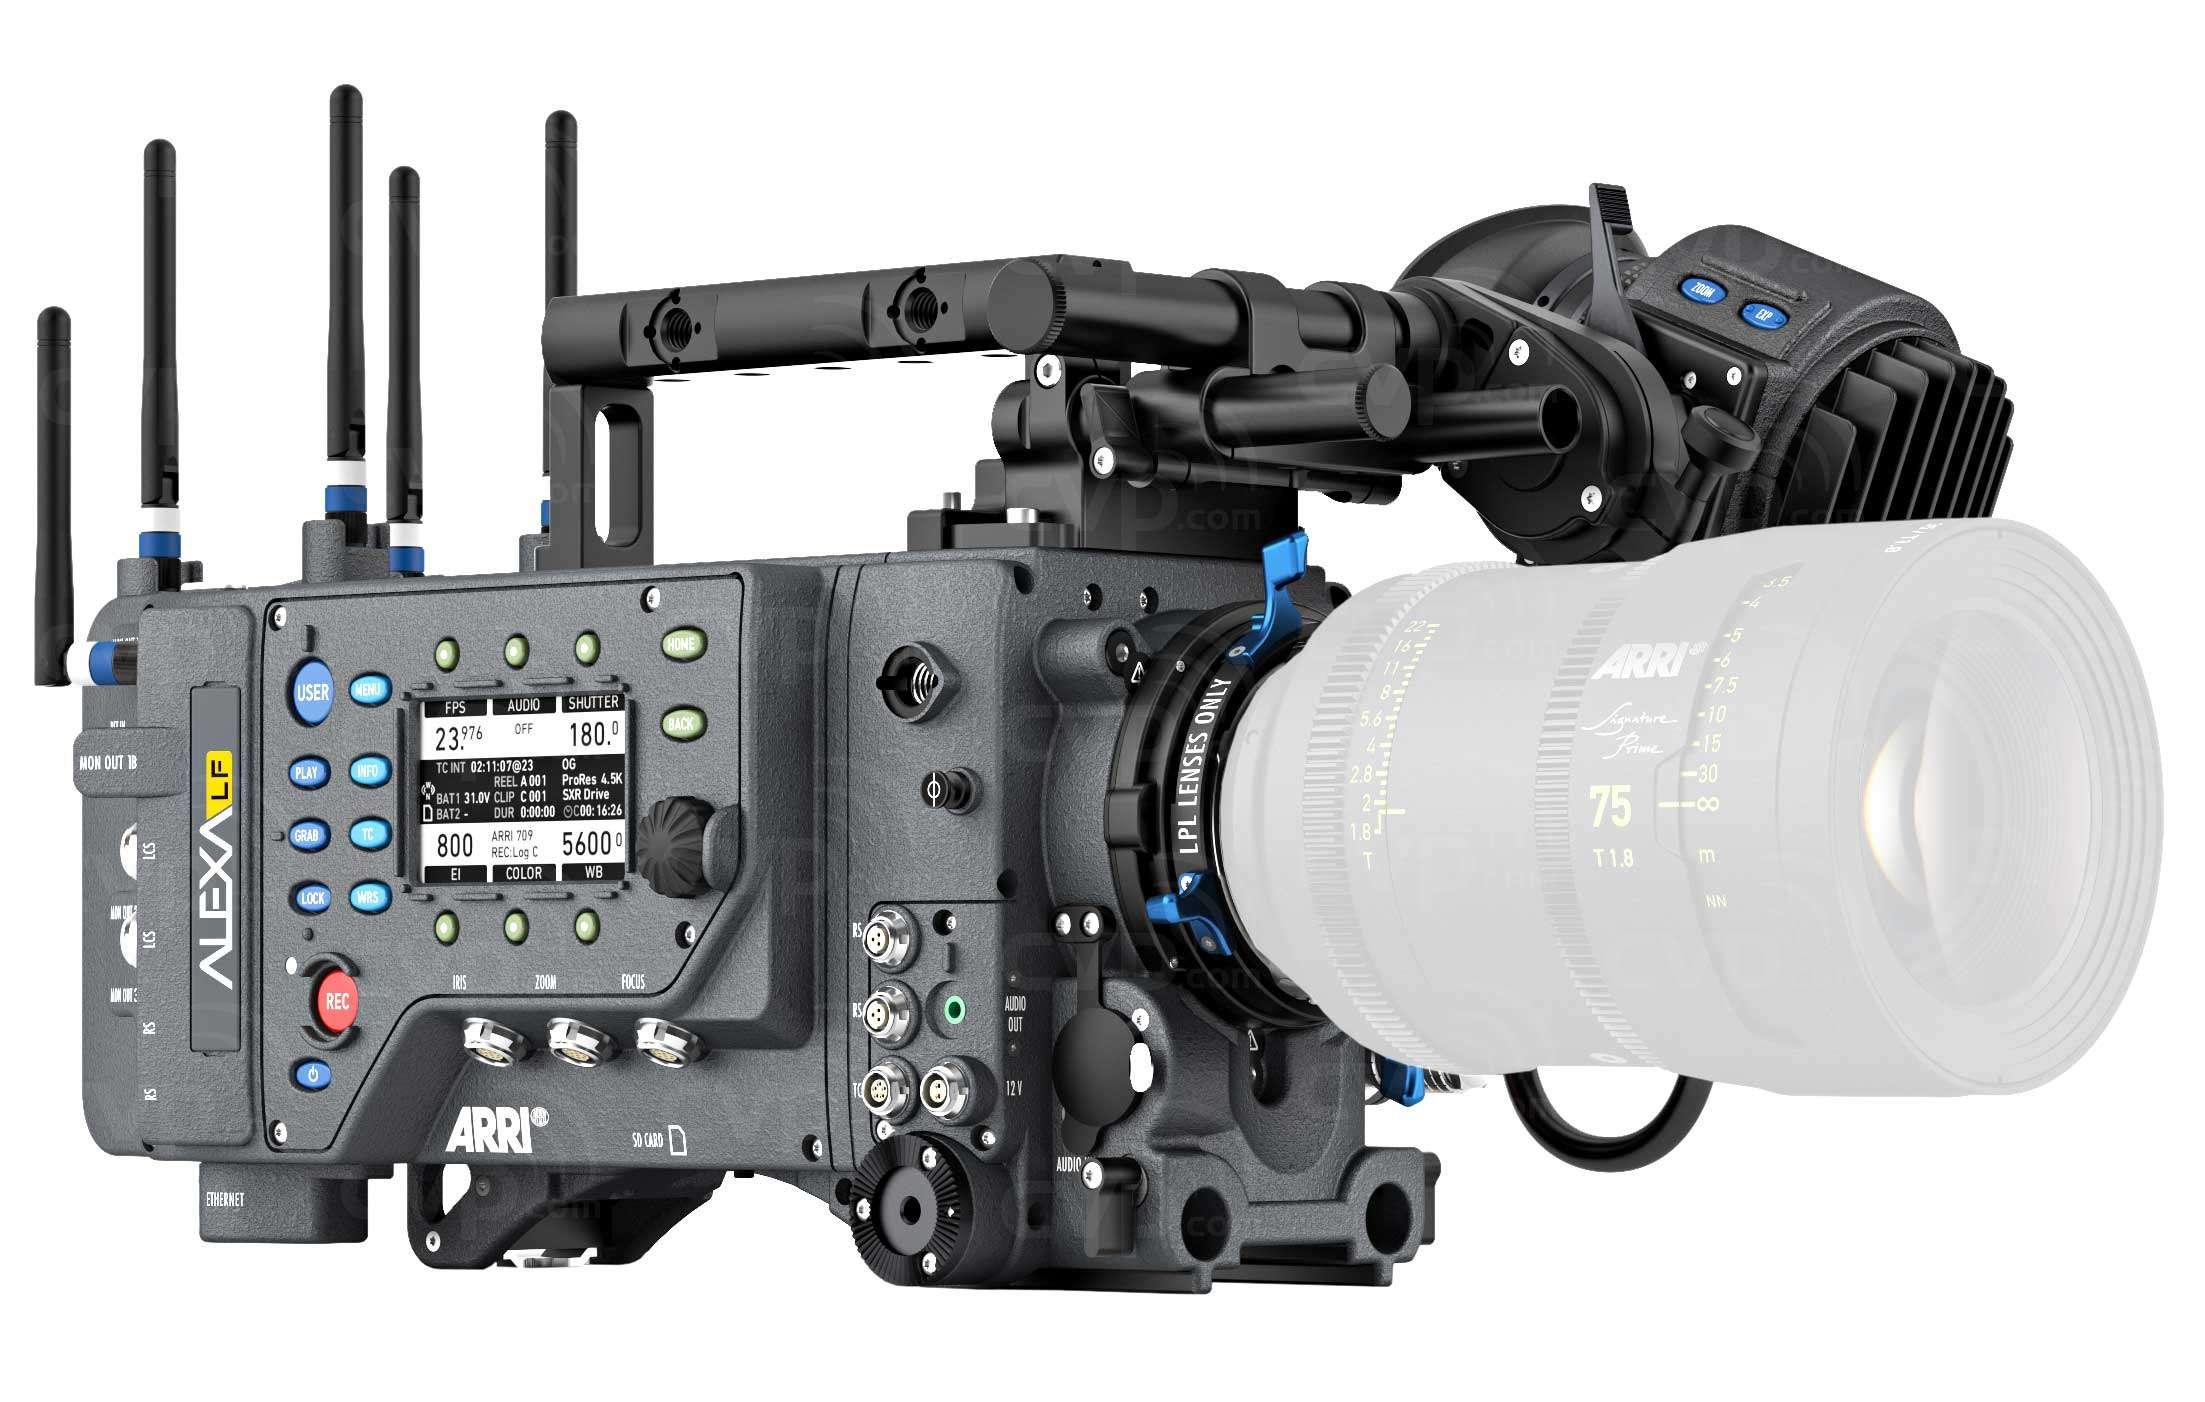 Alexa Audio Buy Arri Alexa Lf Large Format Digital Camera Basic